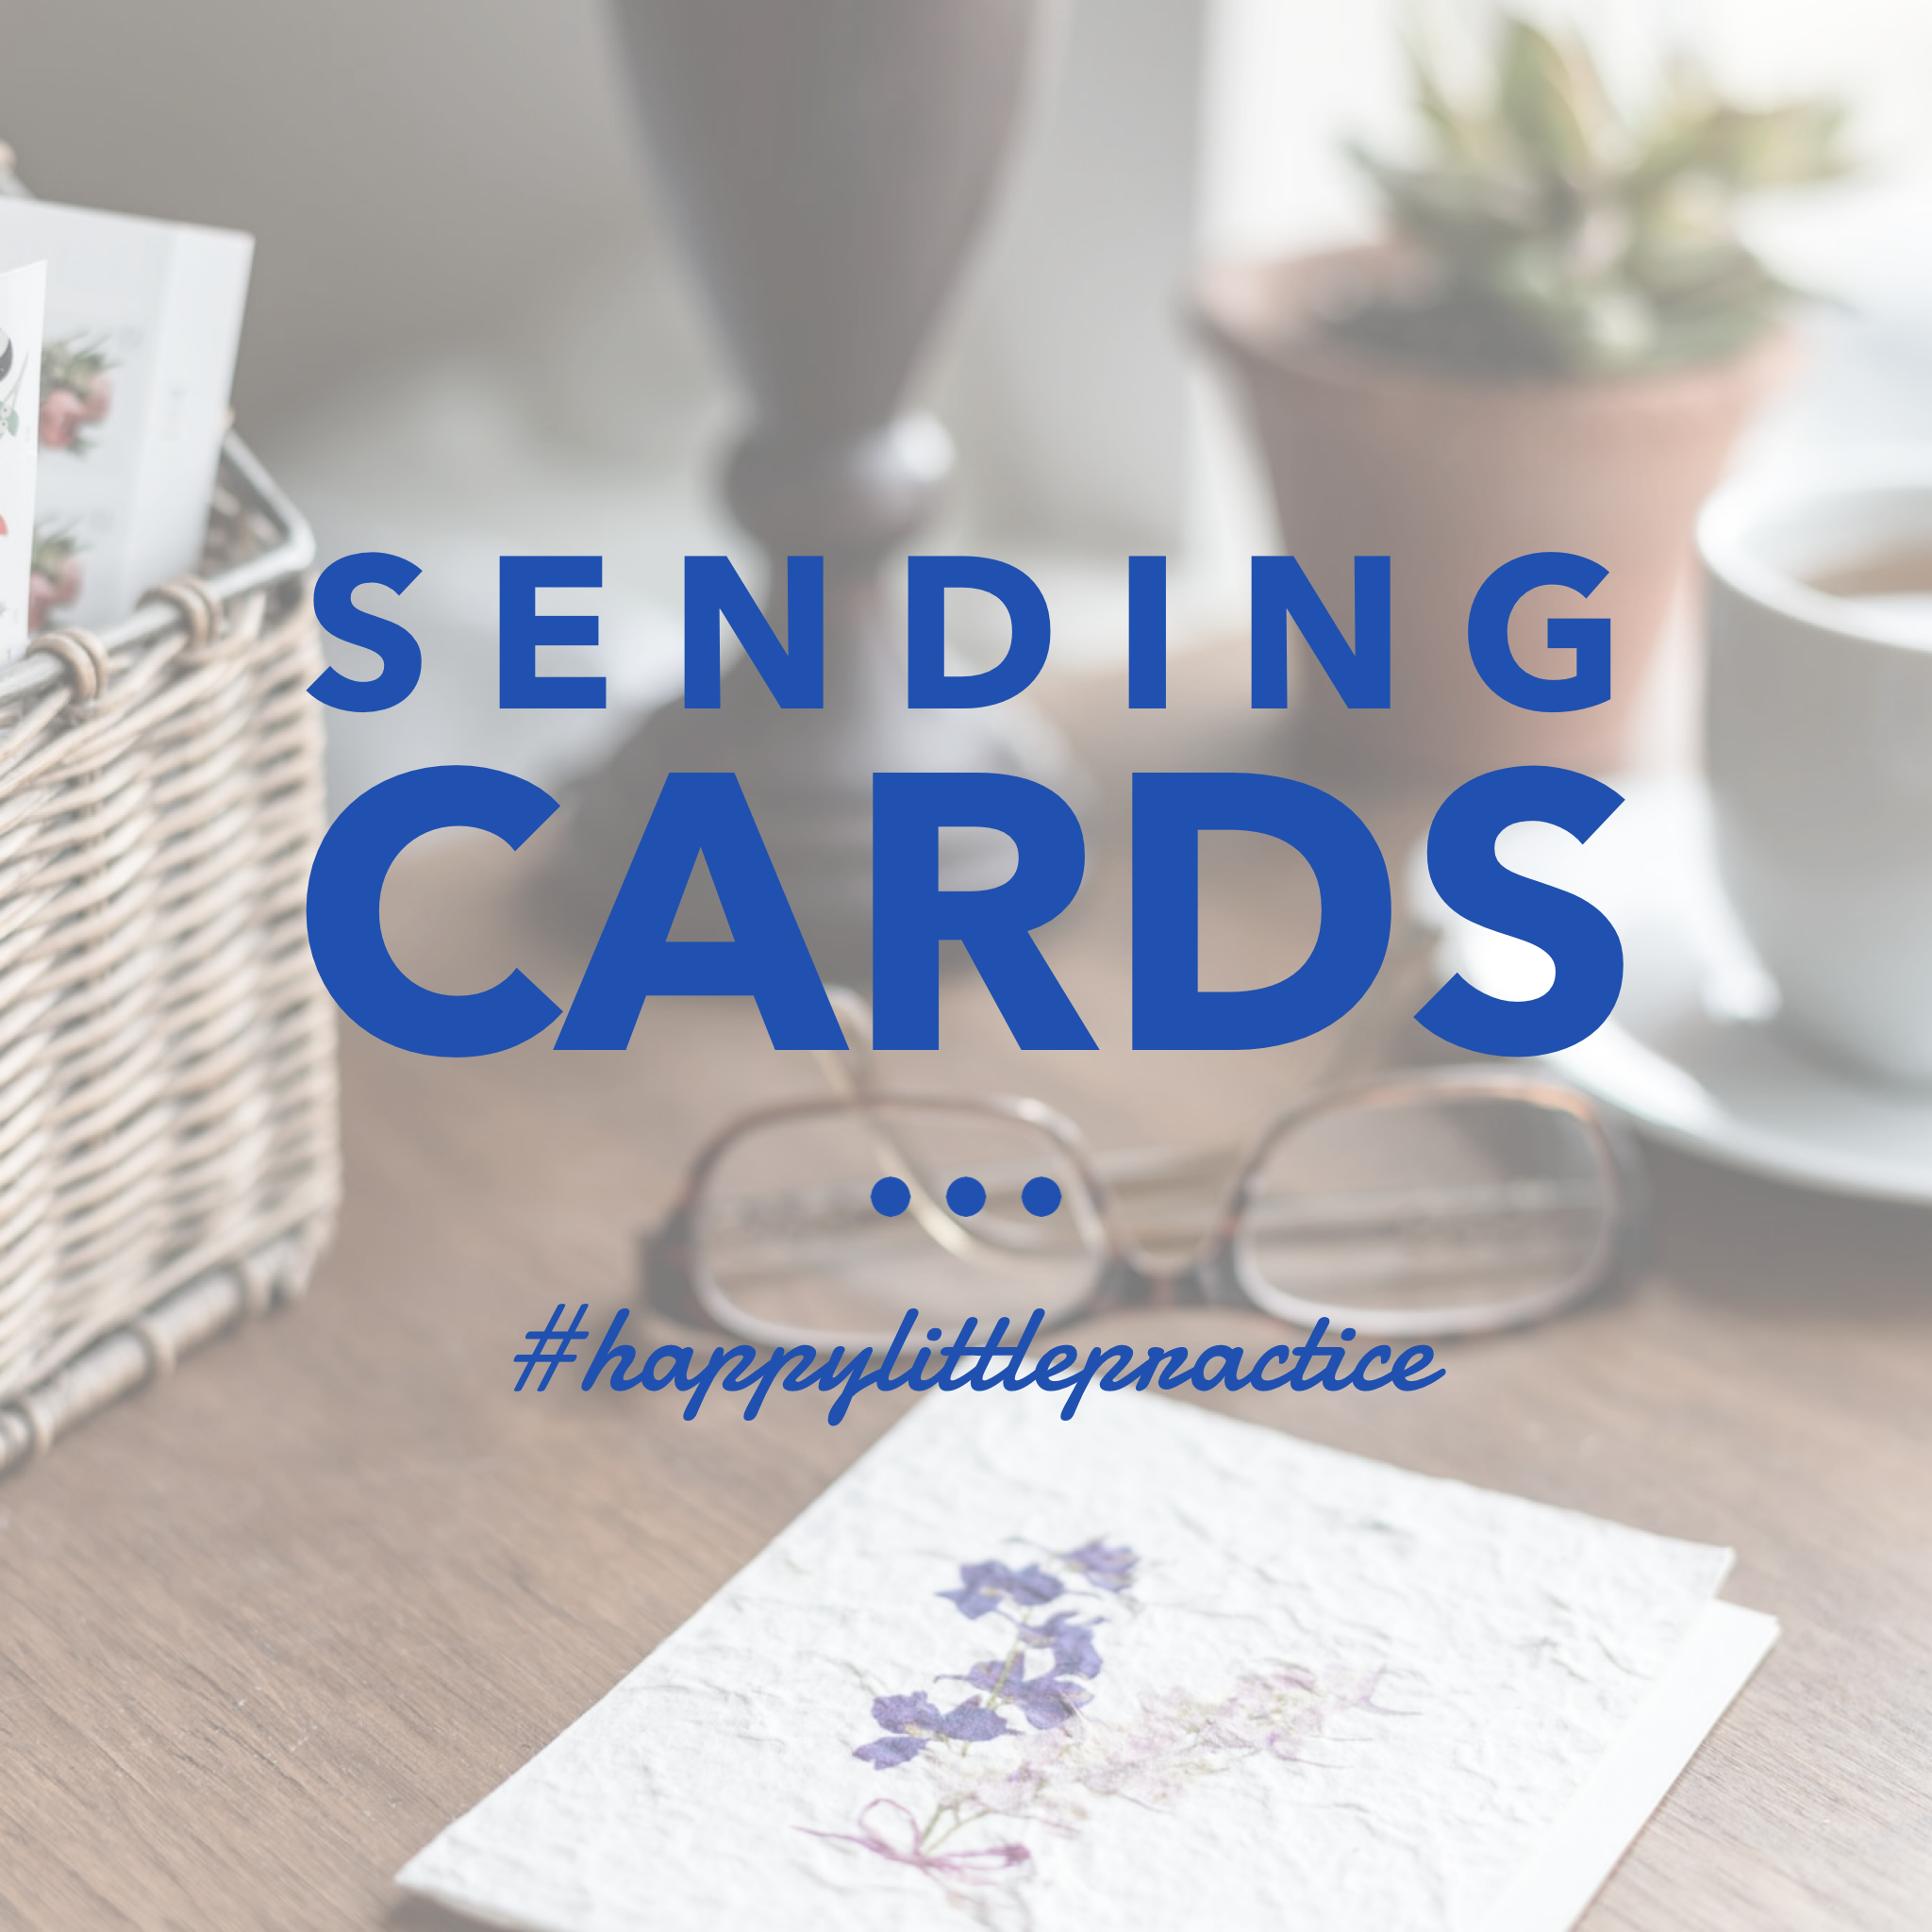 Sending cards to clients